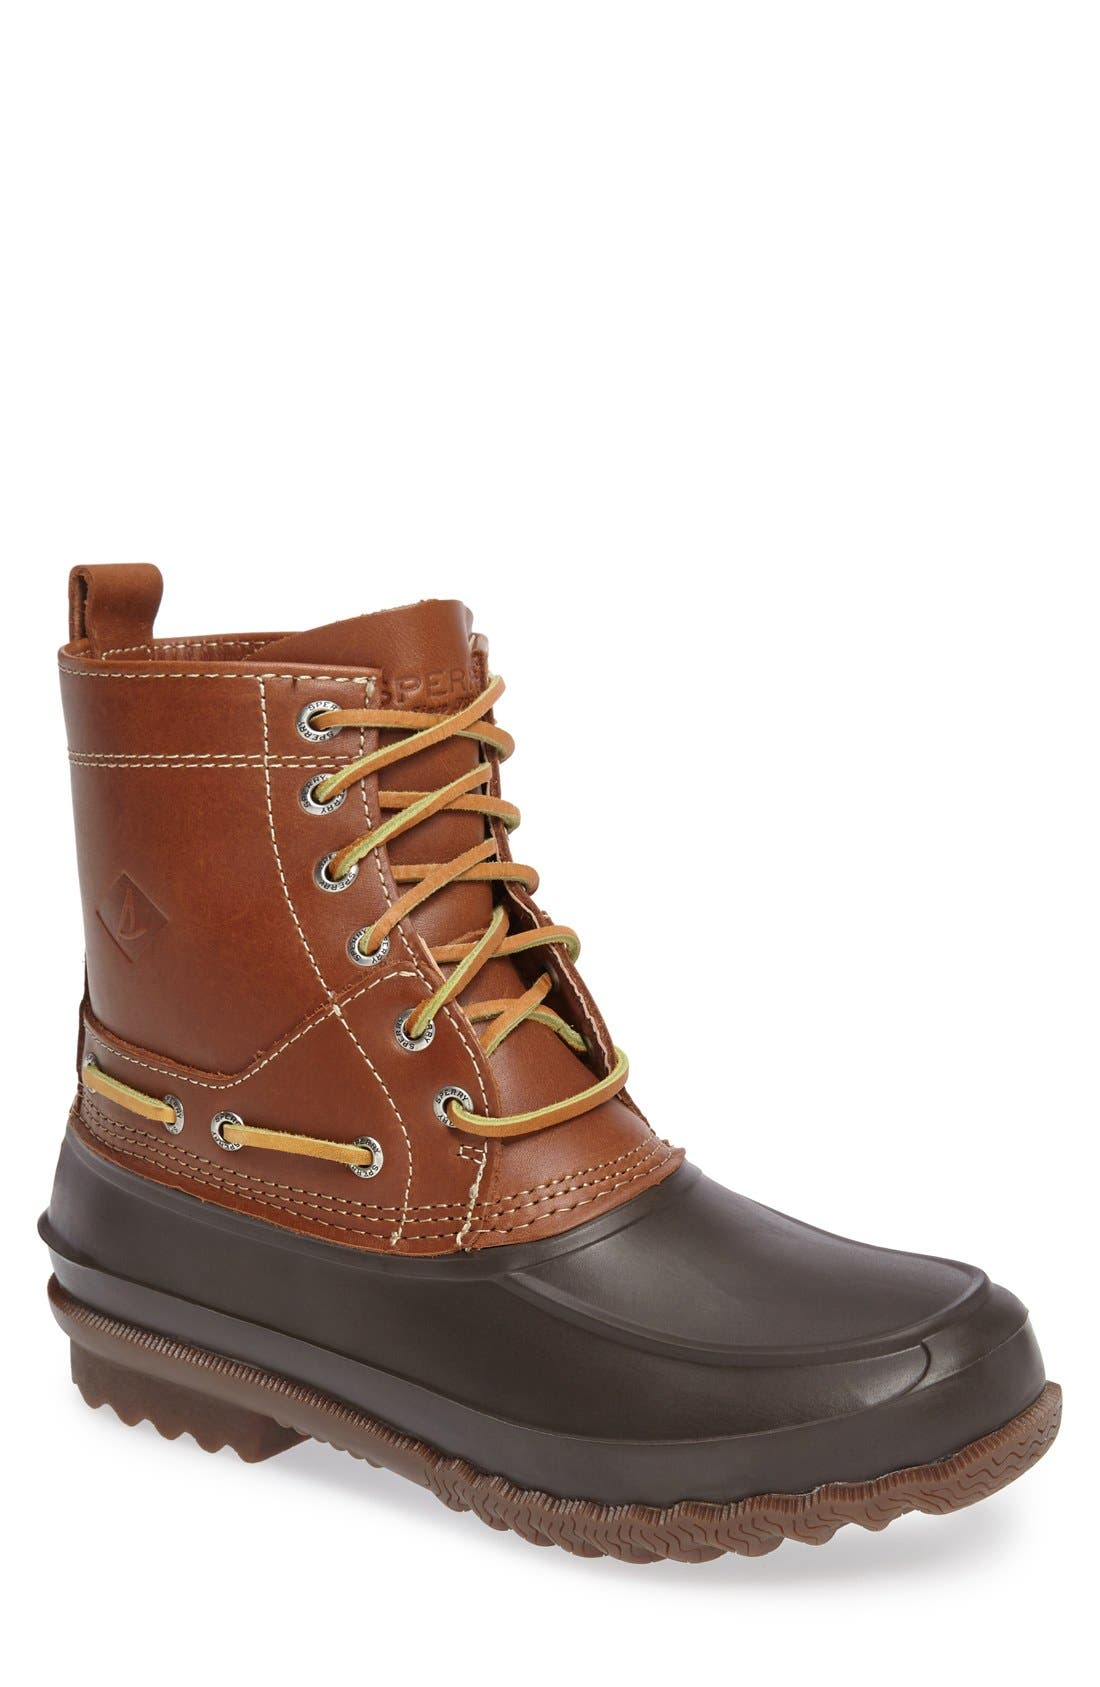 Main Image - Sperry 'Decoy' Waterproof Boot (Men)